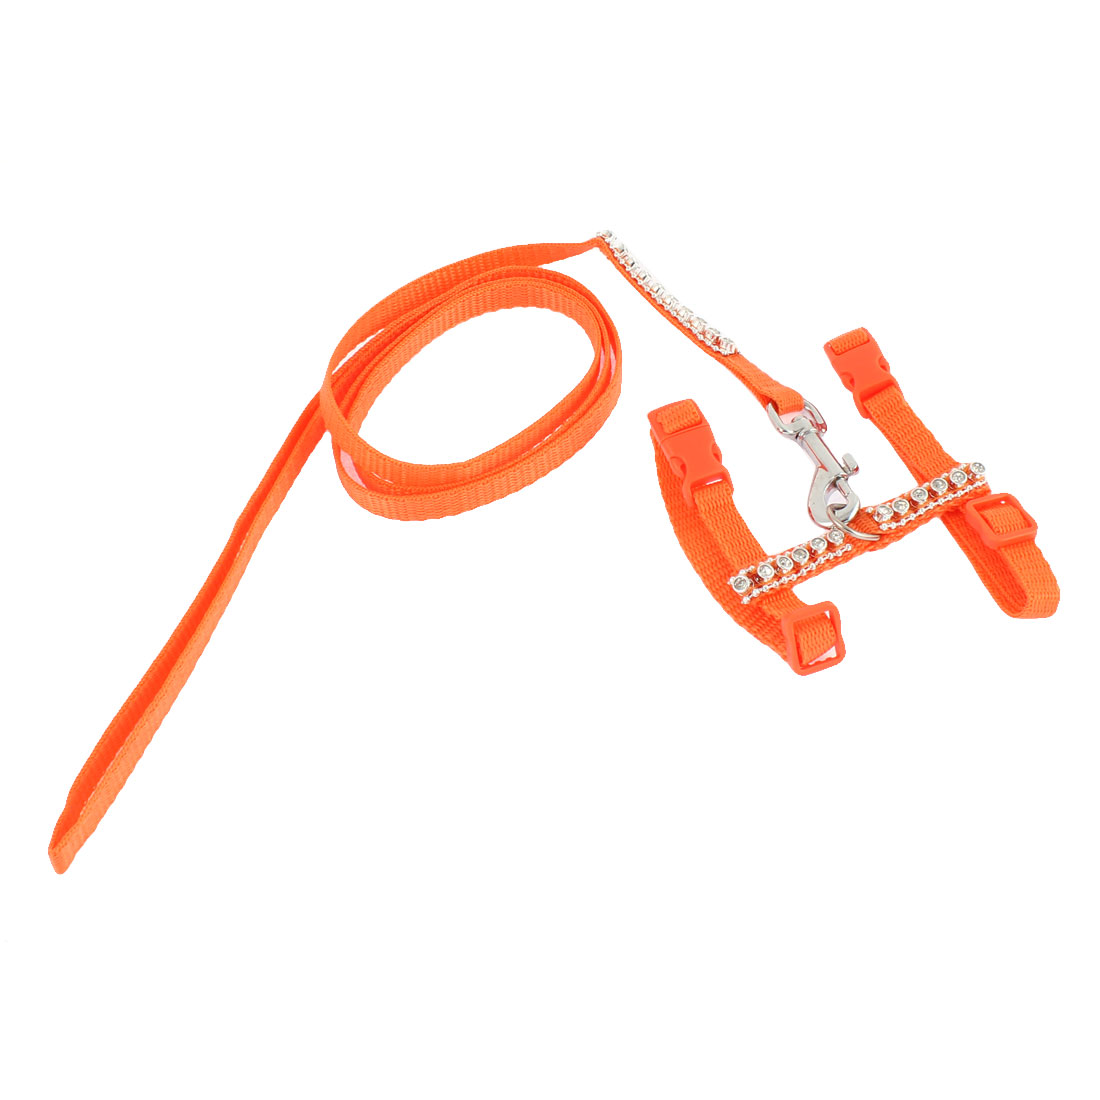 Pet Dog Puppy Cat Adjustable Nylon Training Harness Leash Traction Rope Orange